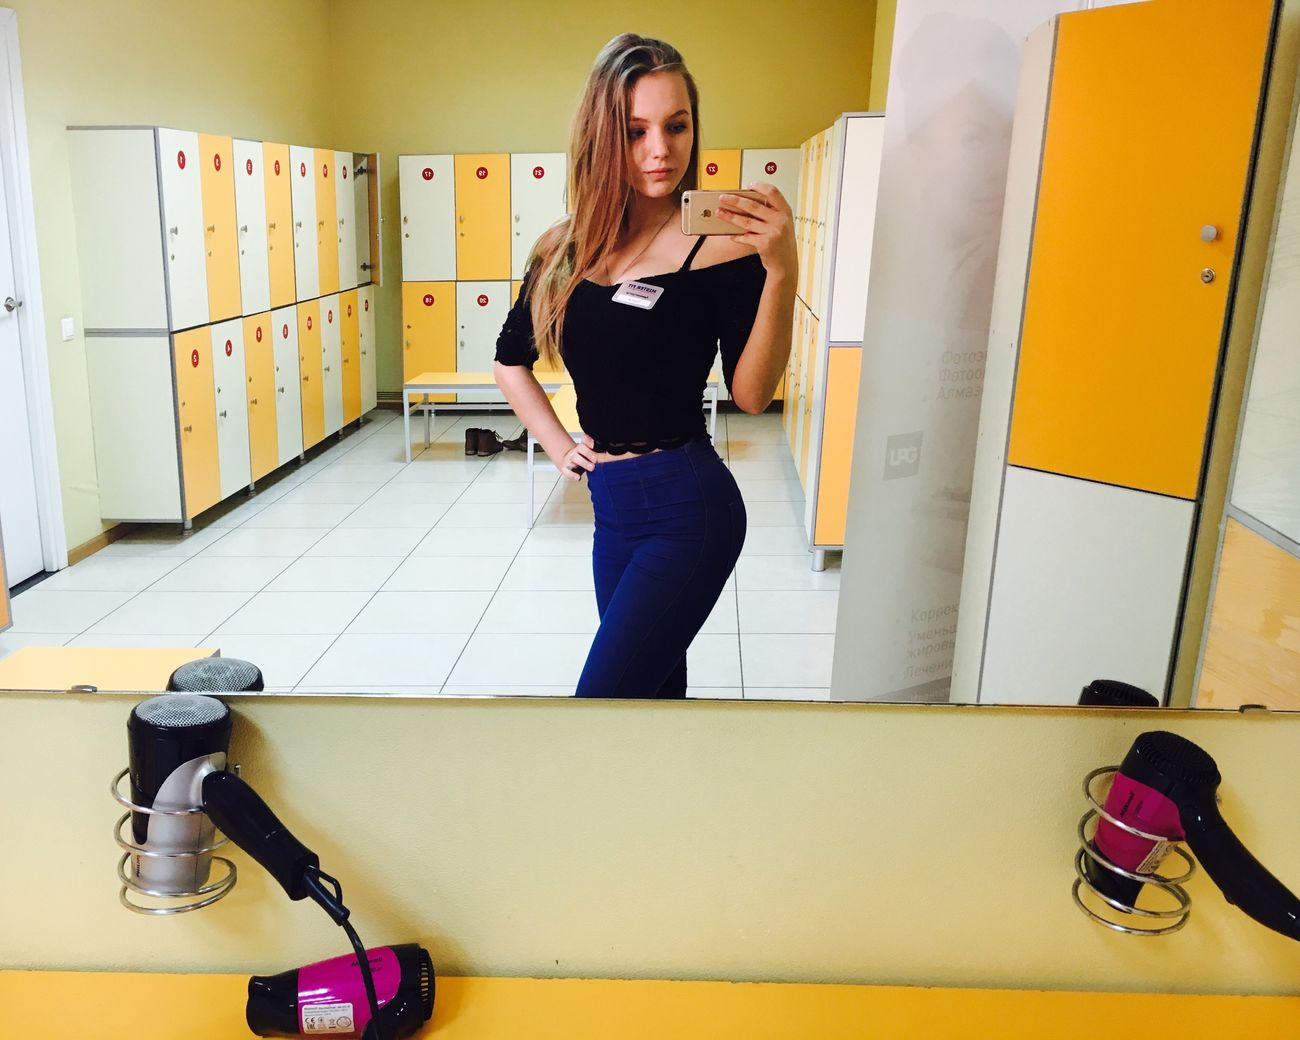 Working Workingym Gym Selfie Misretfit Model Spring That's Me Hello World Popular Popular Photos Goodday Loveit Relaxing Beautiful Taking Photos Enjoying Life